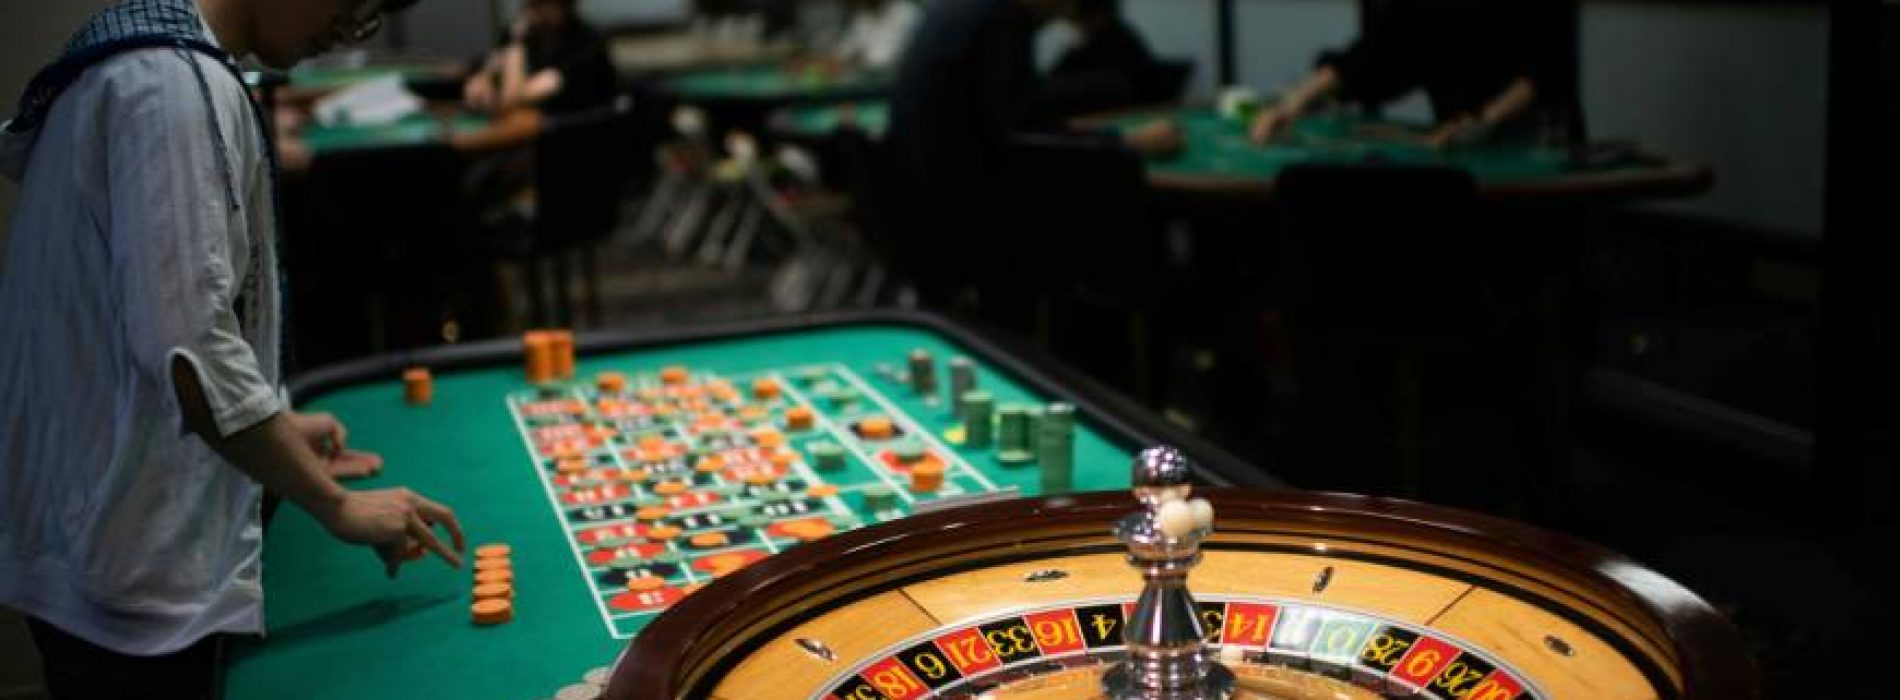 The 8 Cardinal Rules Of Gambling Responsibly